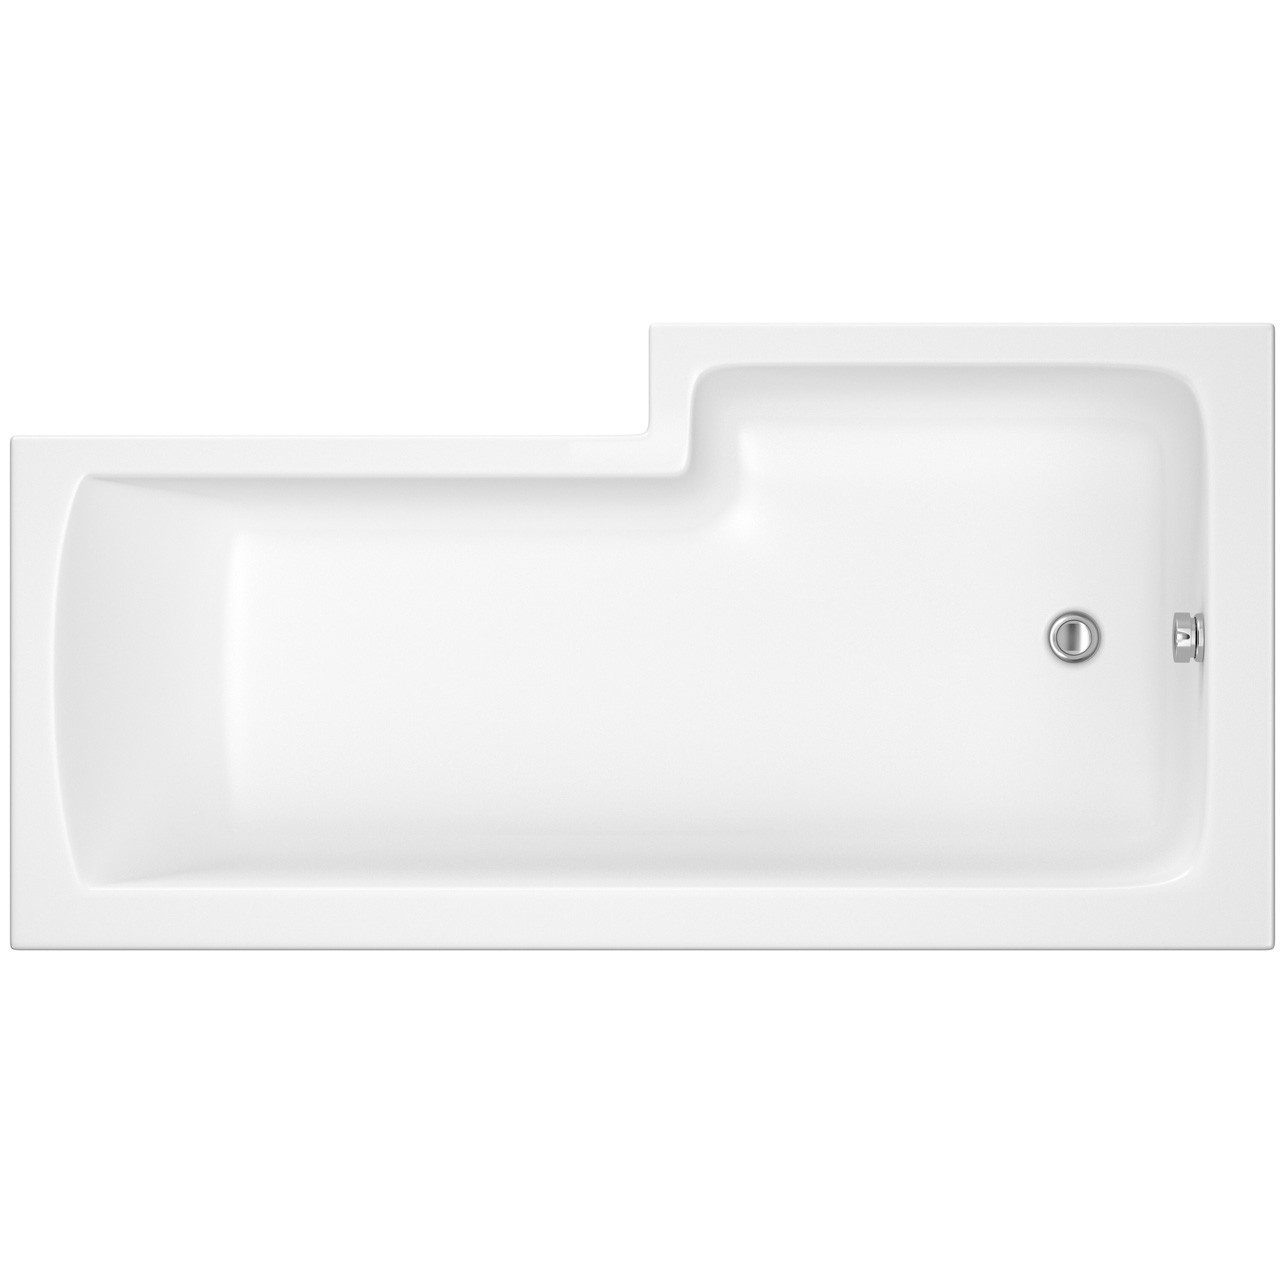 Premier Square Left Hand Shower Bath 1500mm x 850mm - BMBS1585L